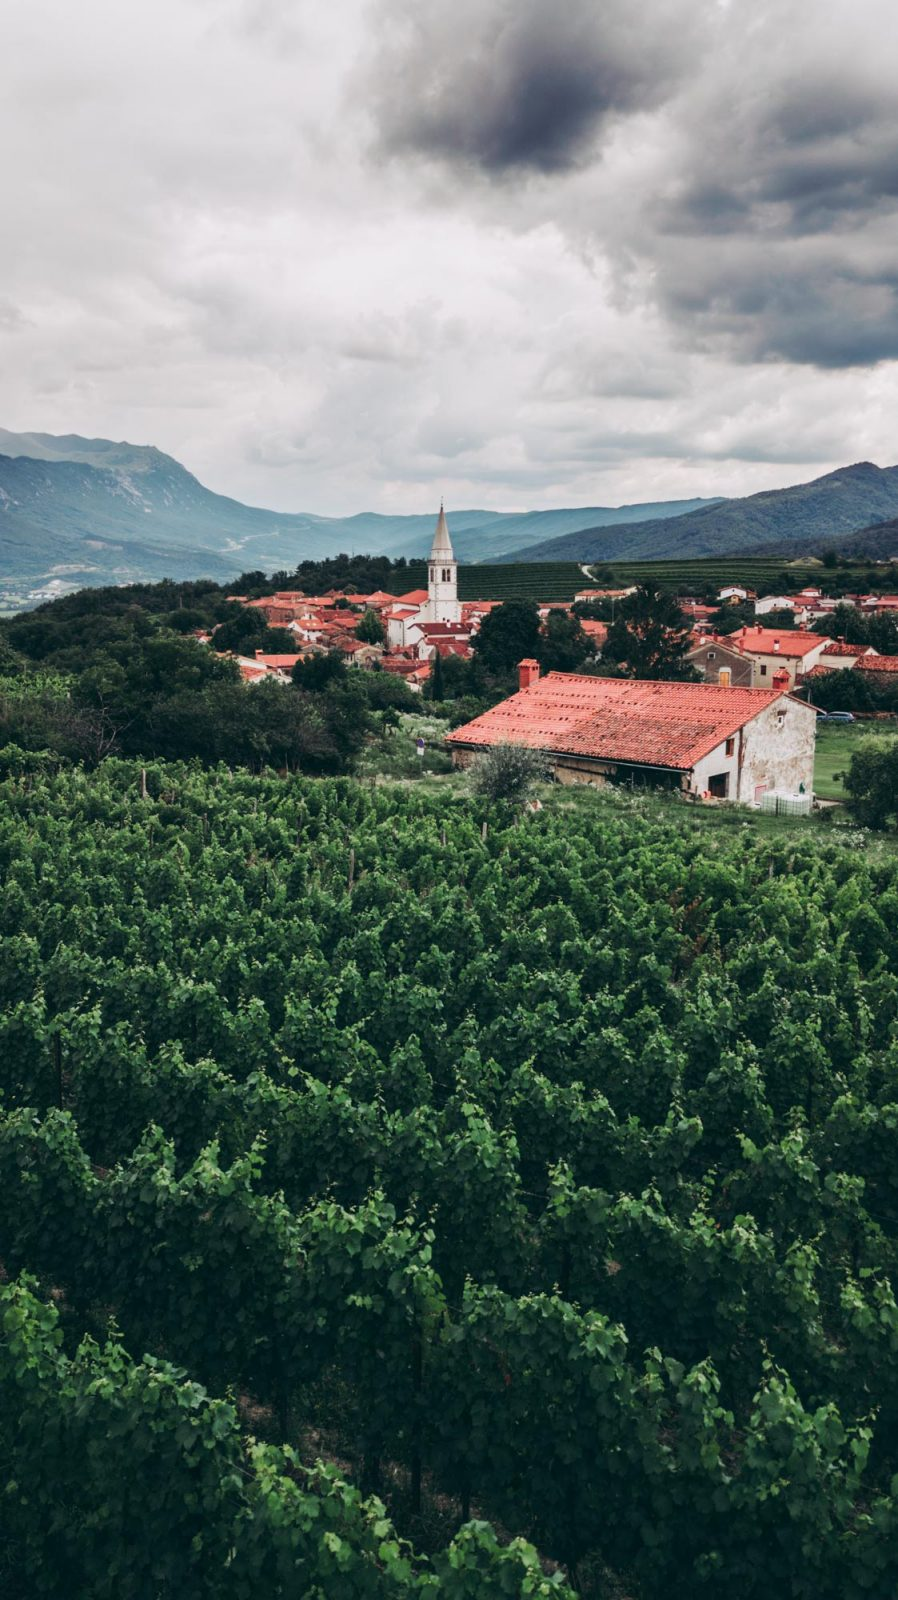 Vipava Valley: Look out onto the Vipava Valley